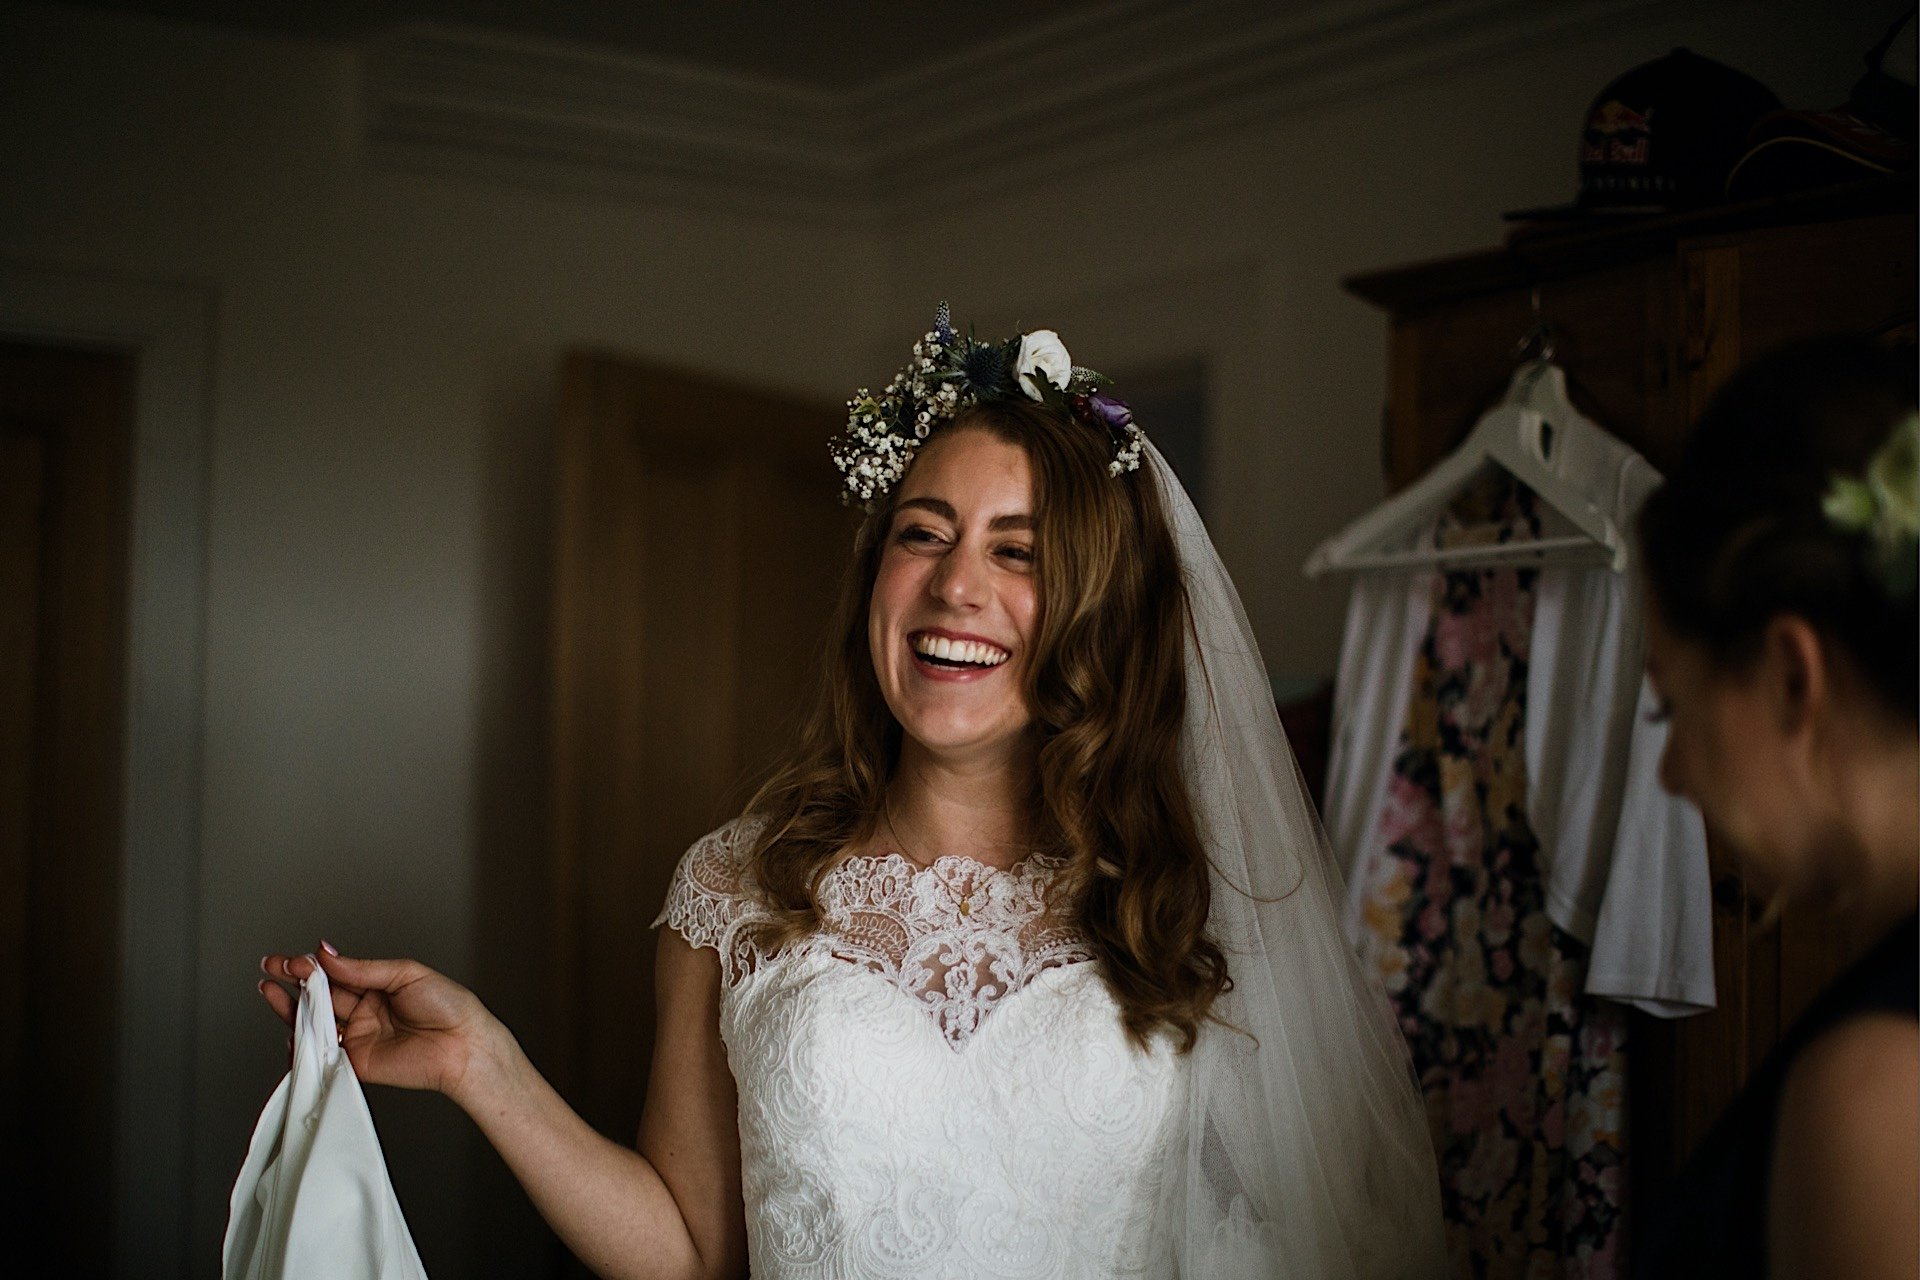 bride smiling wearing wedding dress and flowers in hair